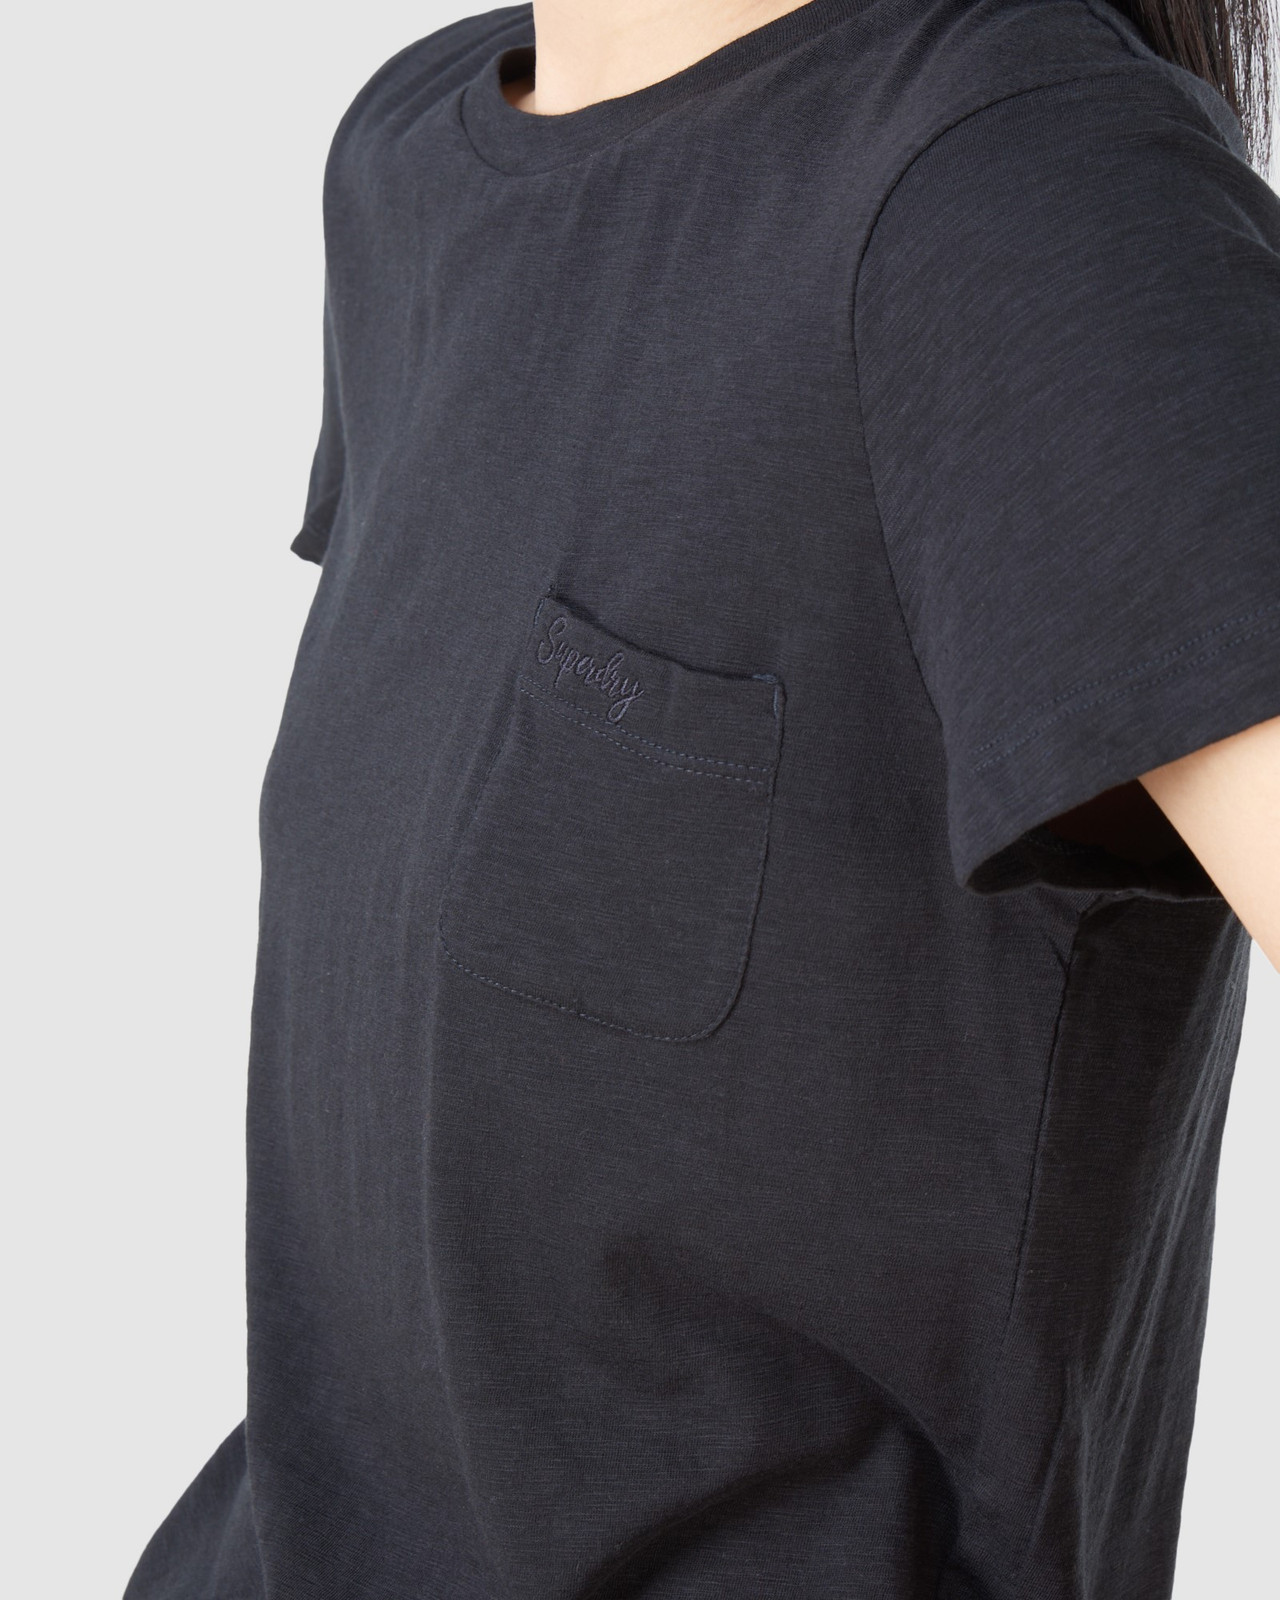 Superdry Womens SCRIPTED CREW TEE Black Plain T Shirts 5